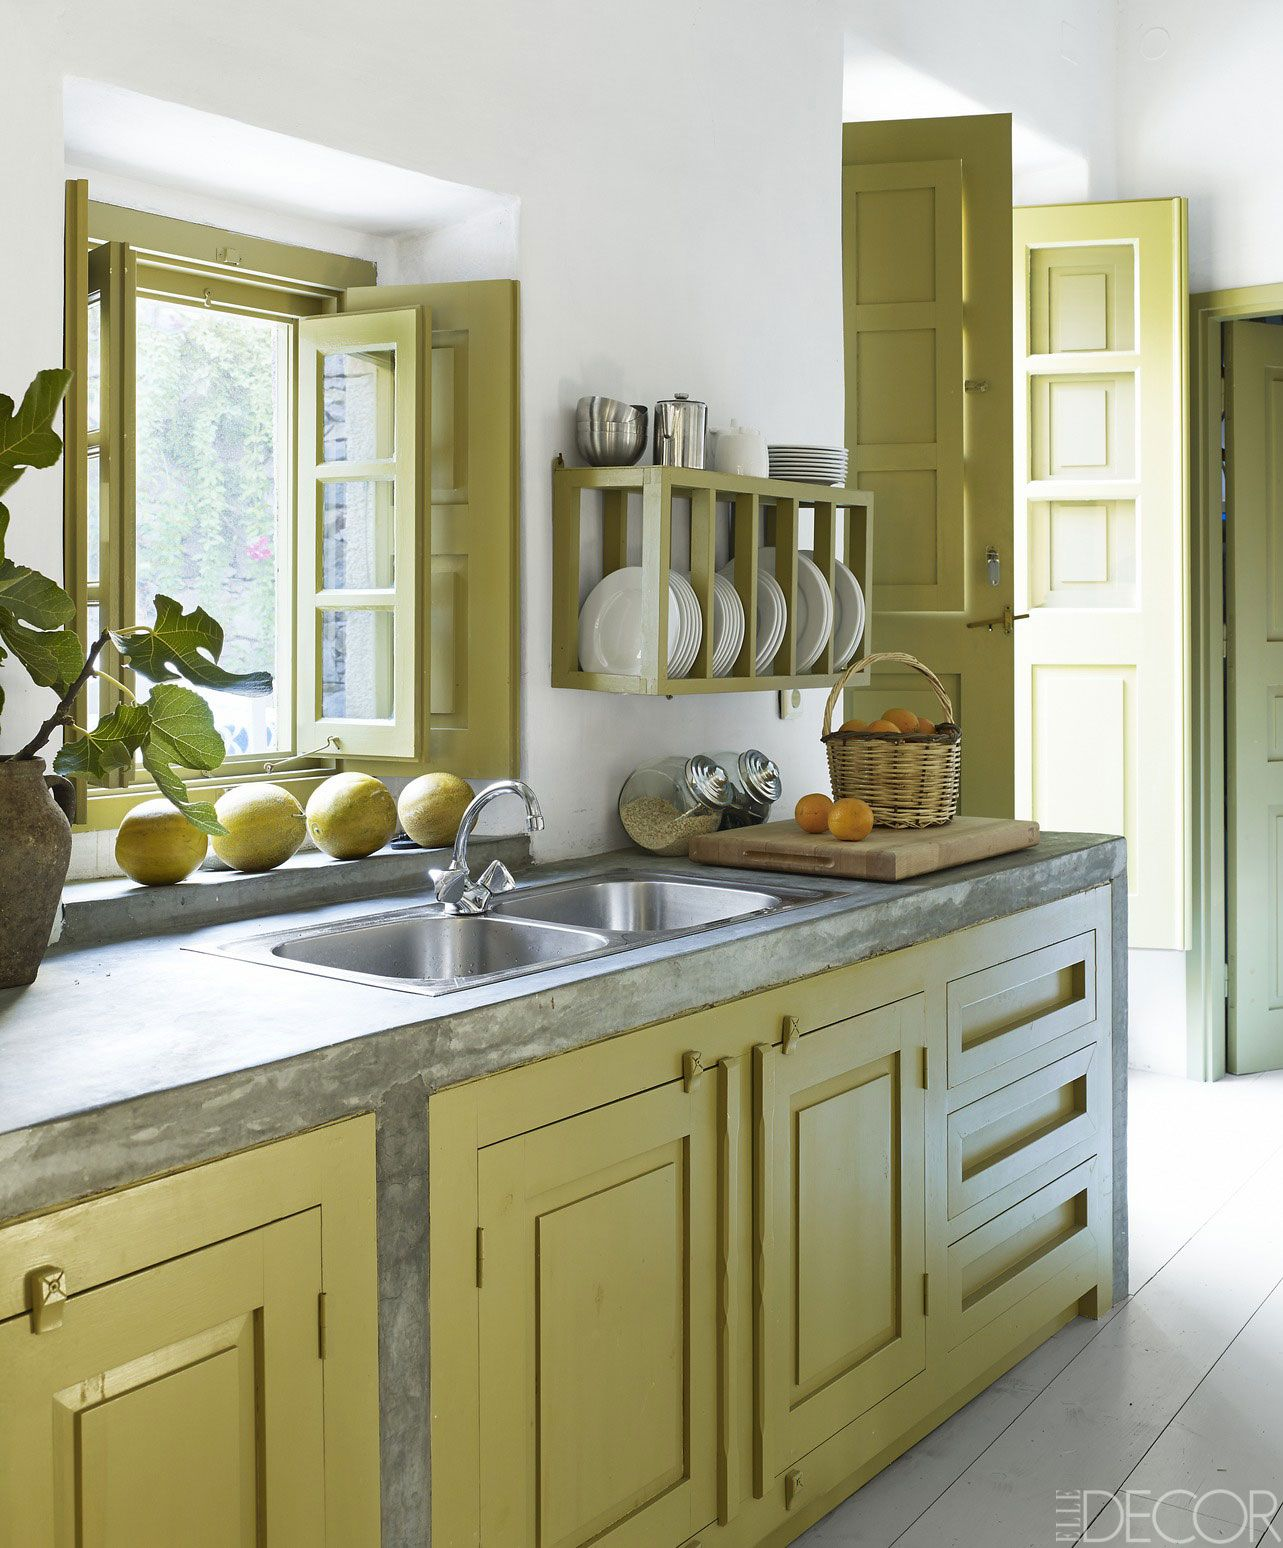 Decorating Ideas Kitchen 55 small kitchen design ideas - decorating tiny kitchens